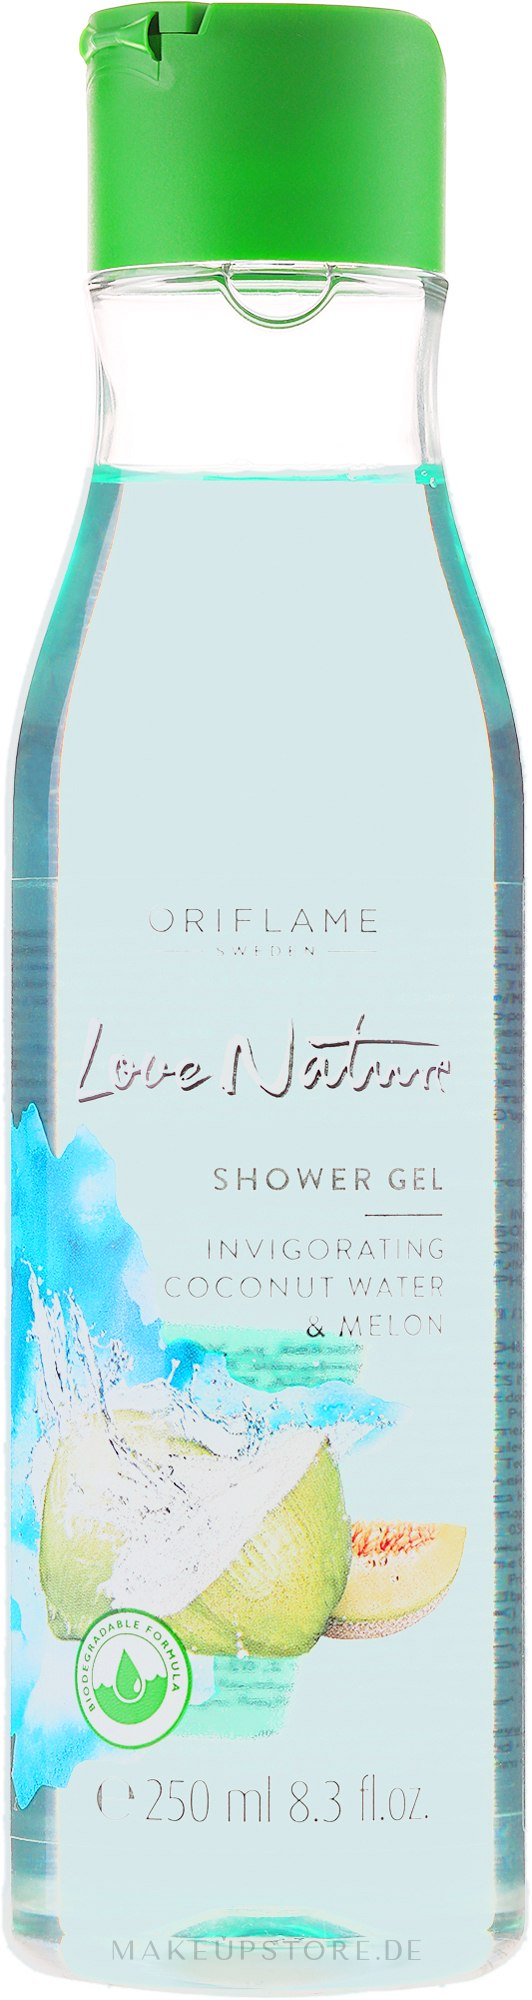 Duschgel Kokoswasser und Melone - Oriflame Love Nature Coconut Water&Melon Shower Gel — Bild 250 ml